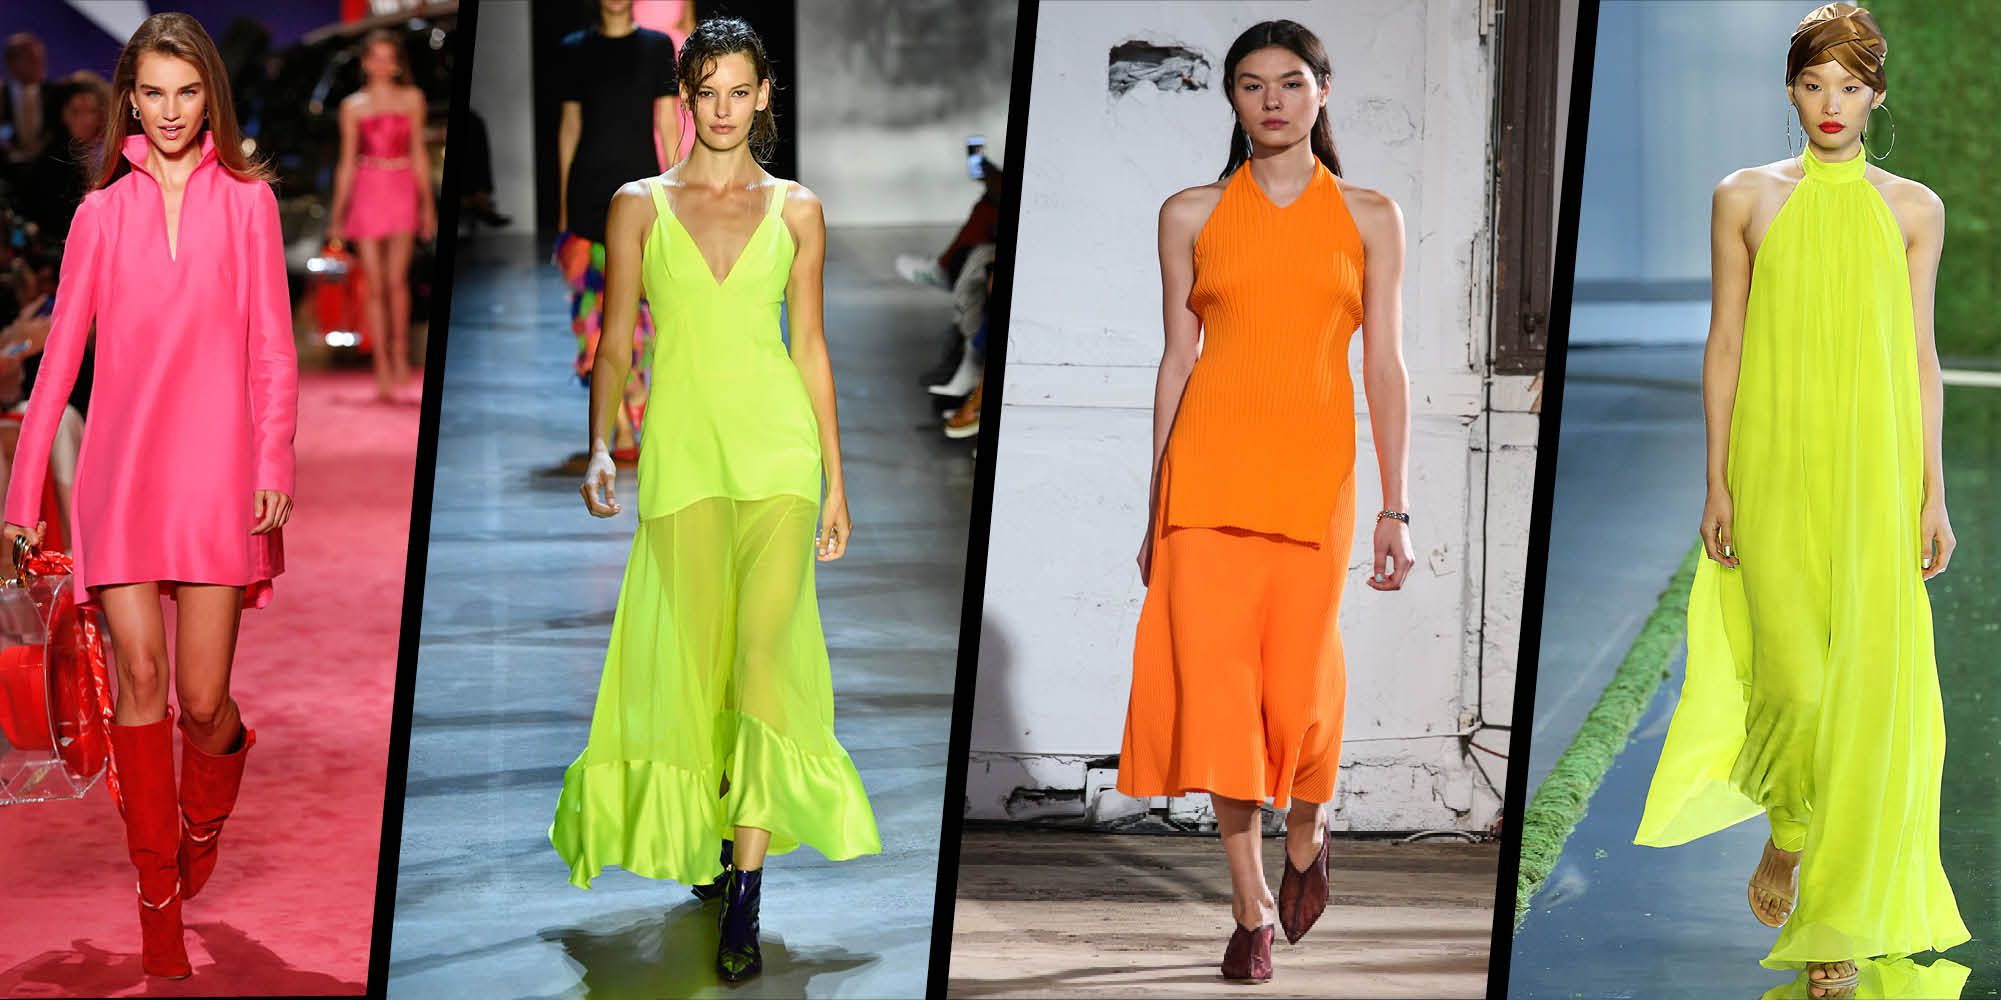 Neon brights are ruling the runways at New York Fashion Week